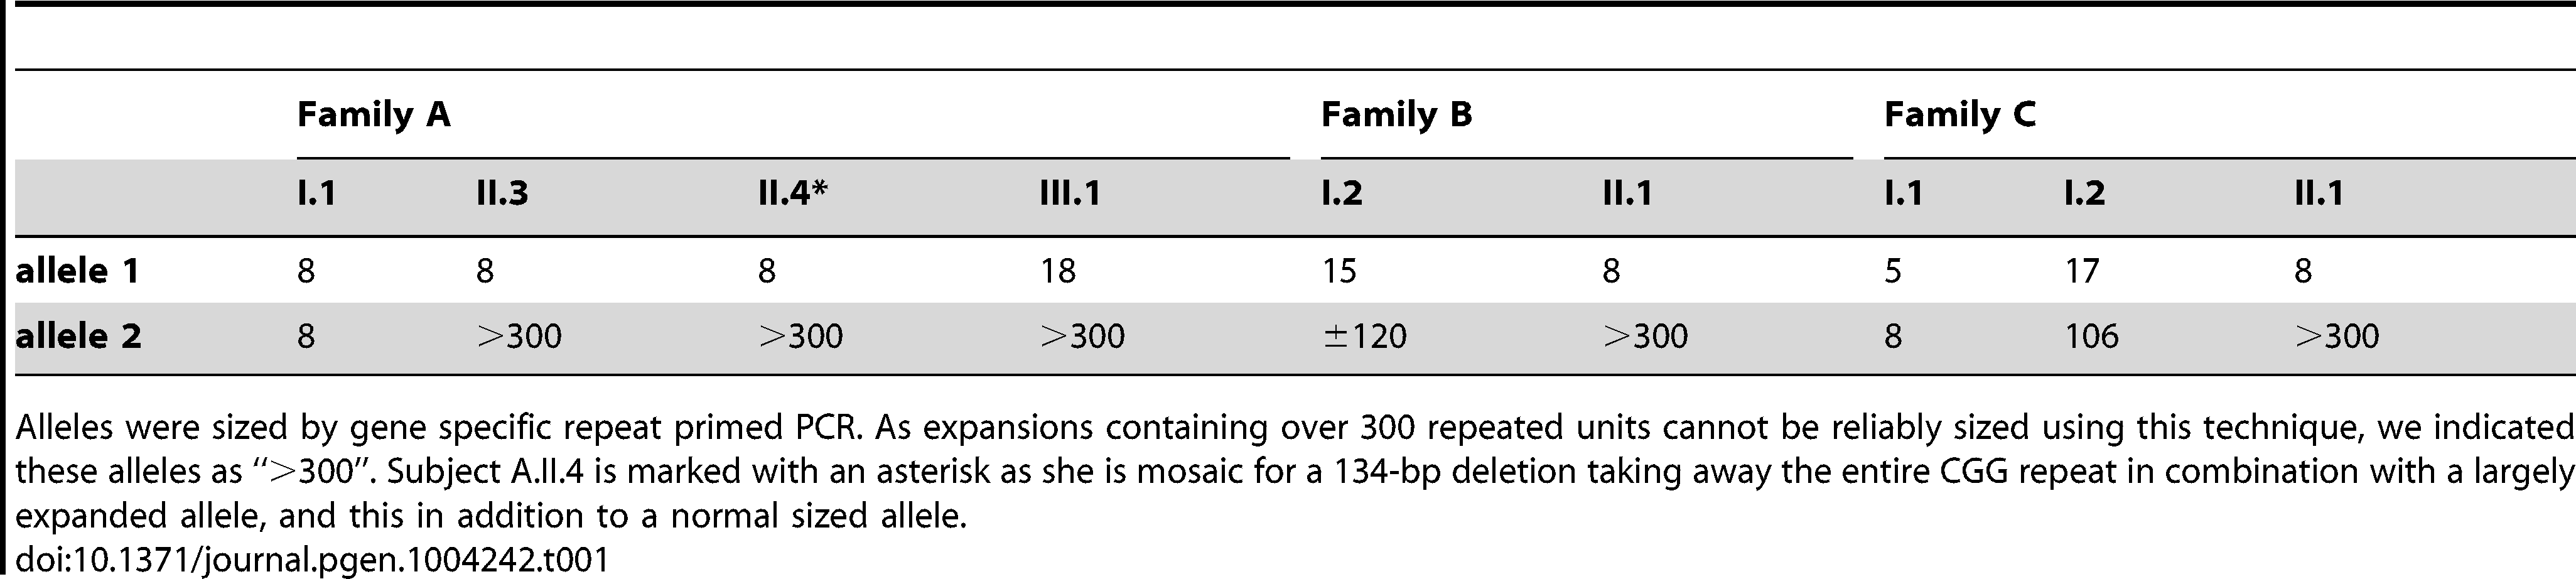 Sizing the repeat in all available family members with gene specific repeat primed PCR.